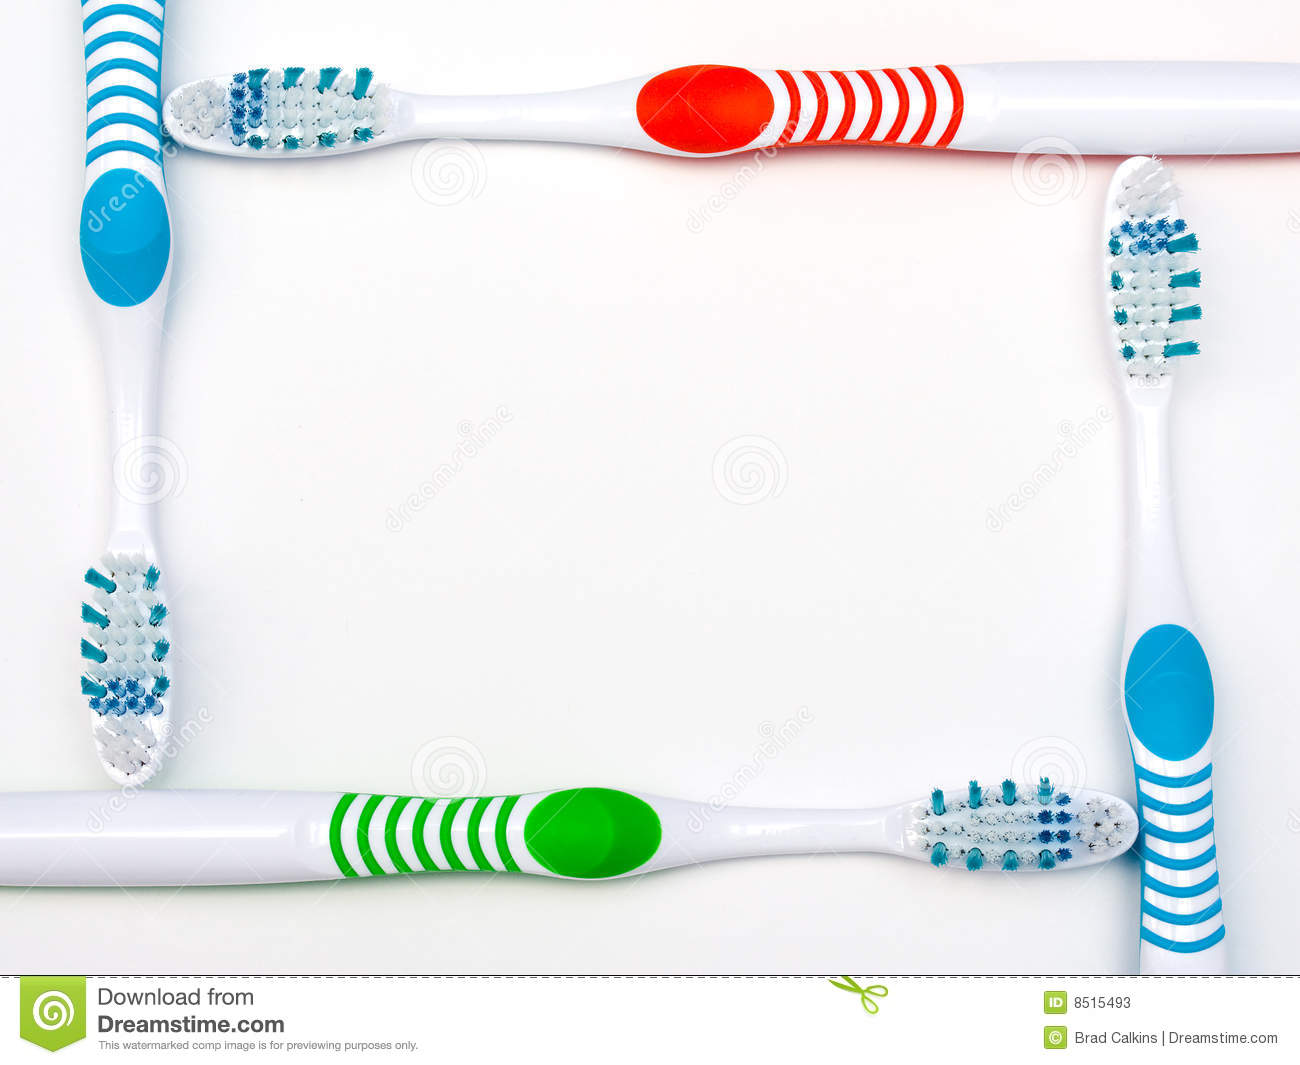 Red green and blue toothbrushes make border for dental background ...